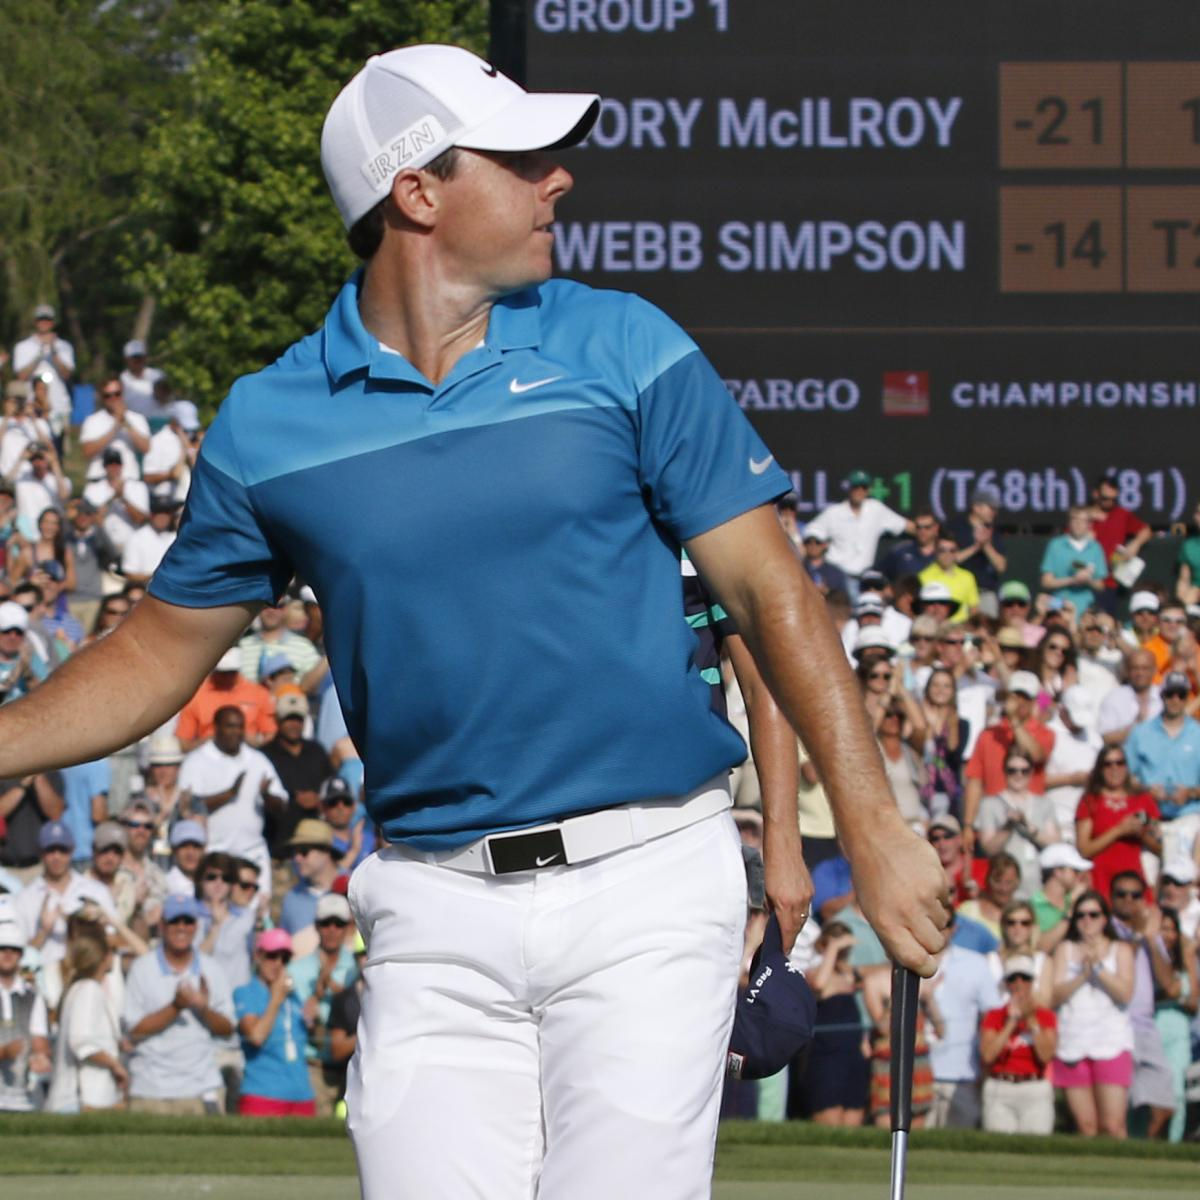 Wells Fargo Championship 2015: Leaderboard Scores And